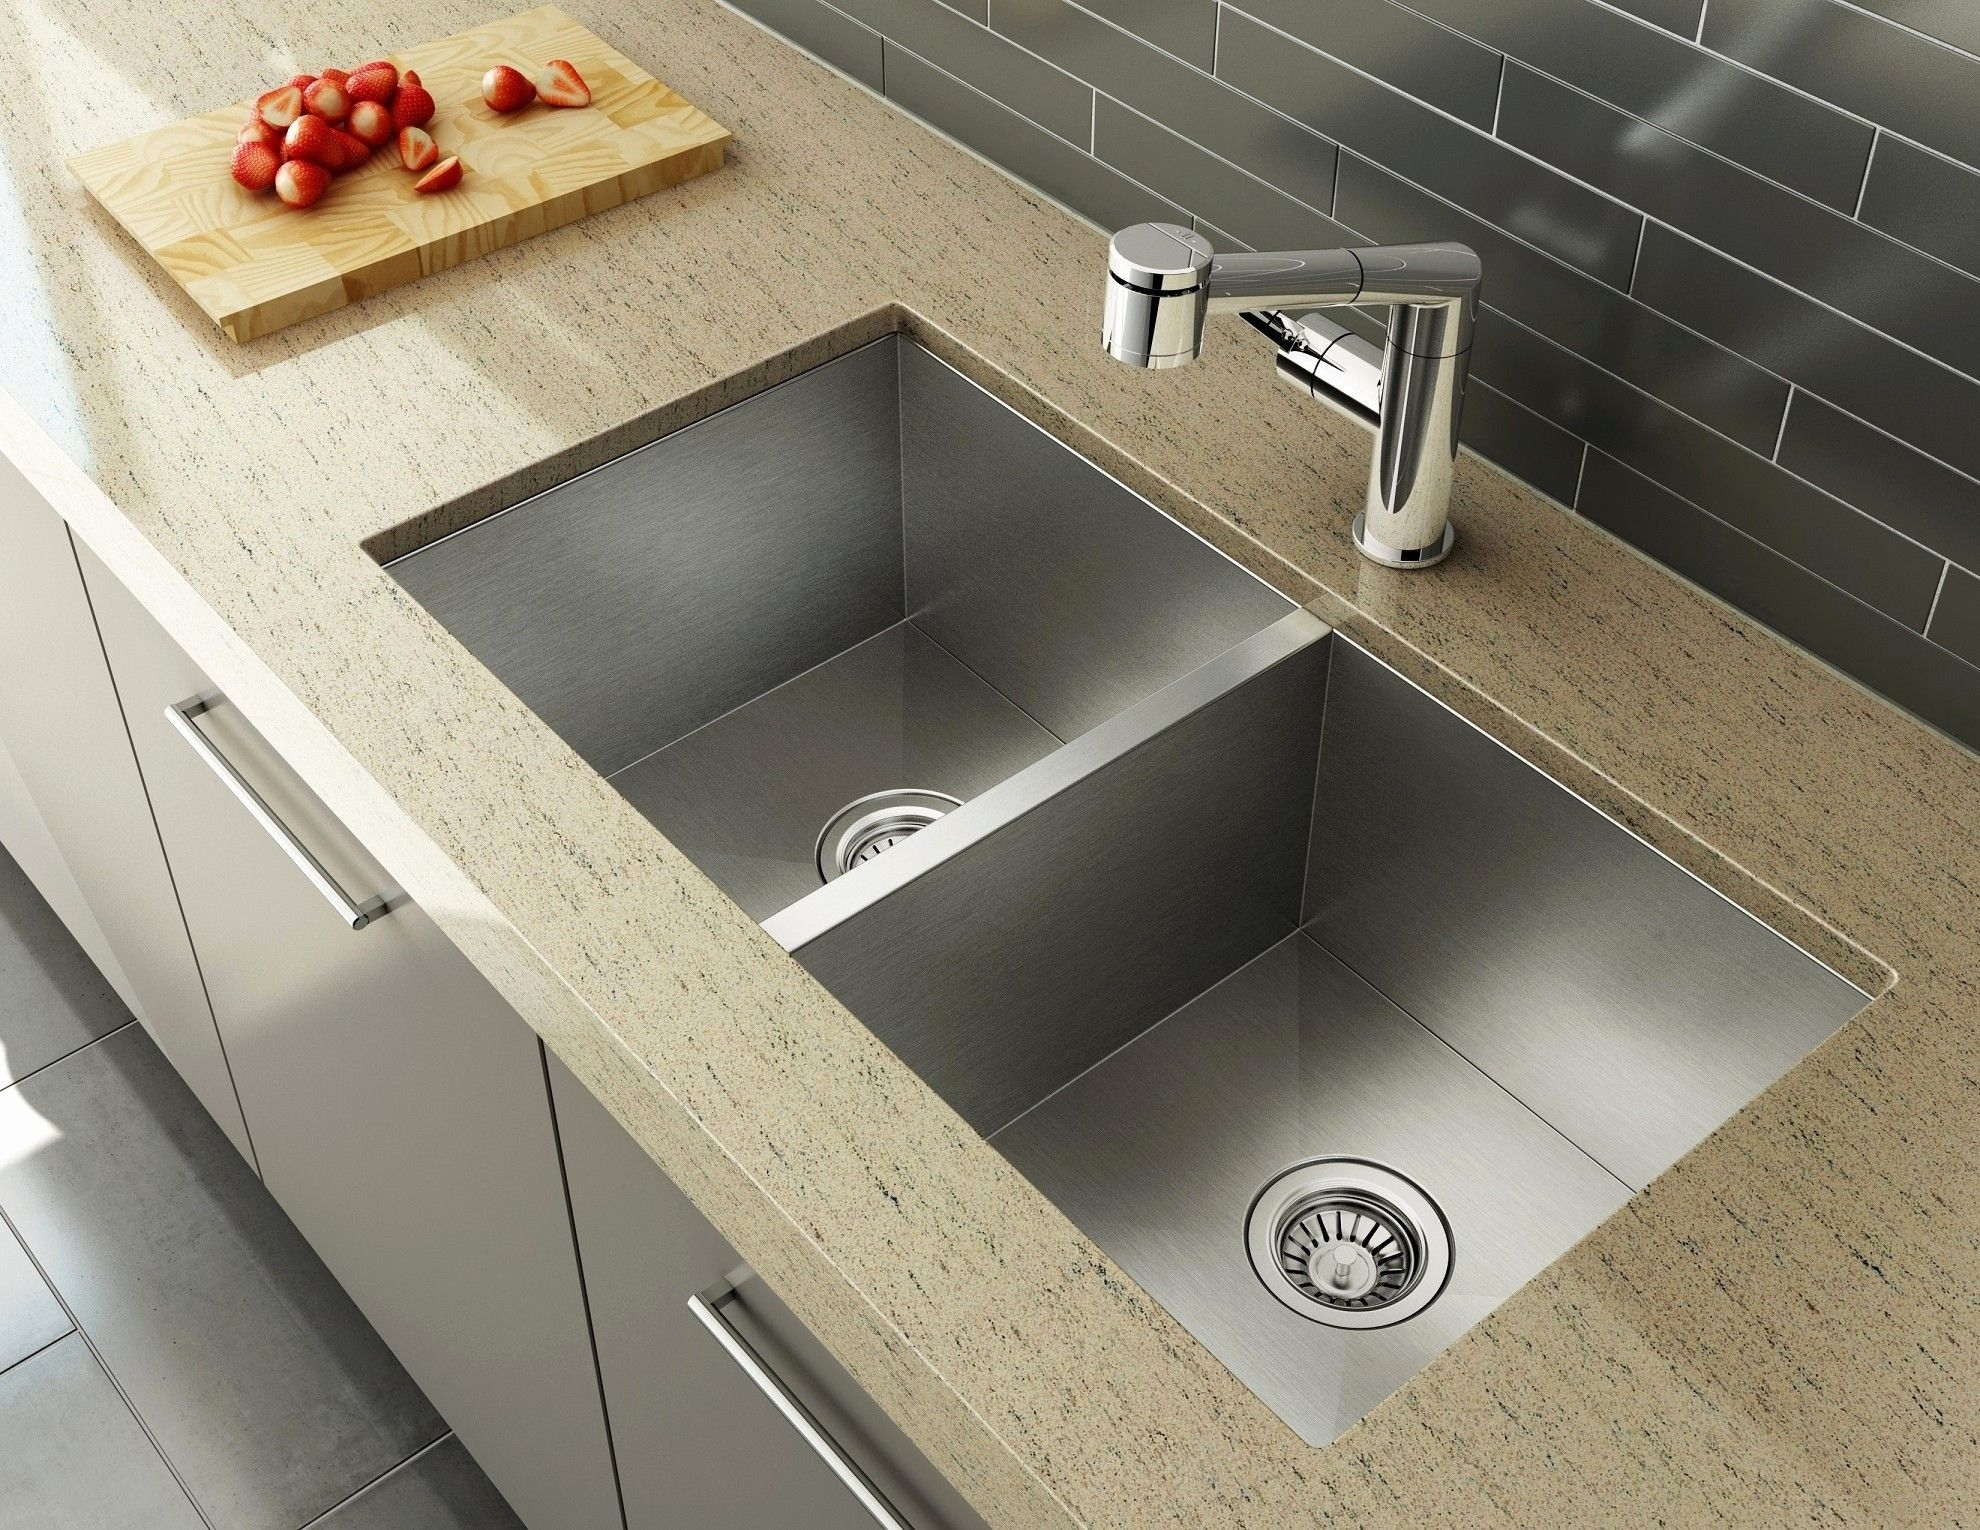 Best Of Kitchen Sink Sieve Check more